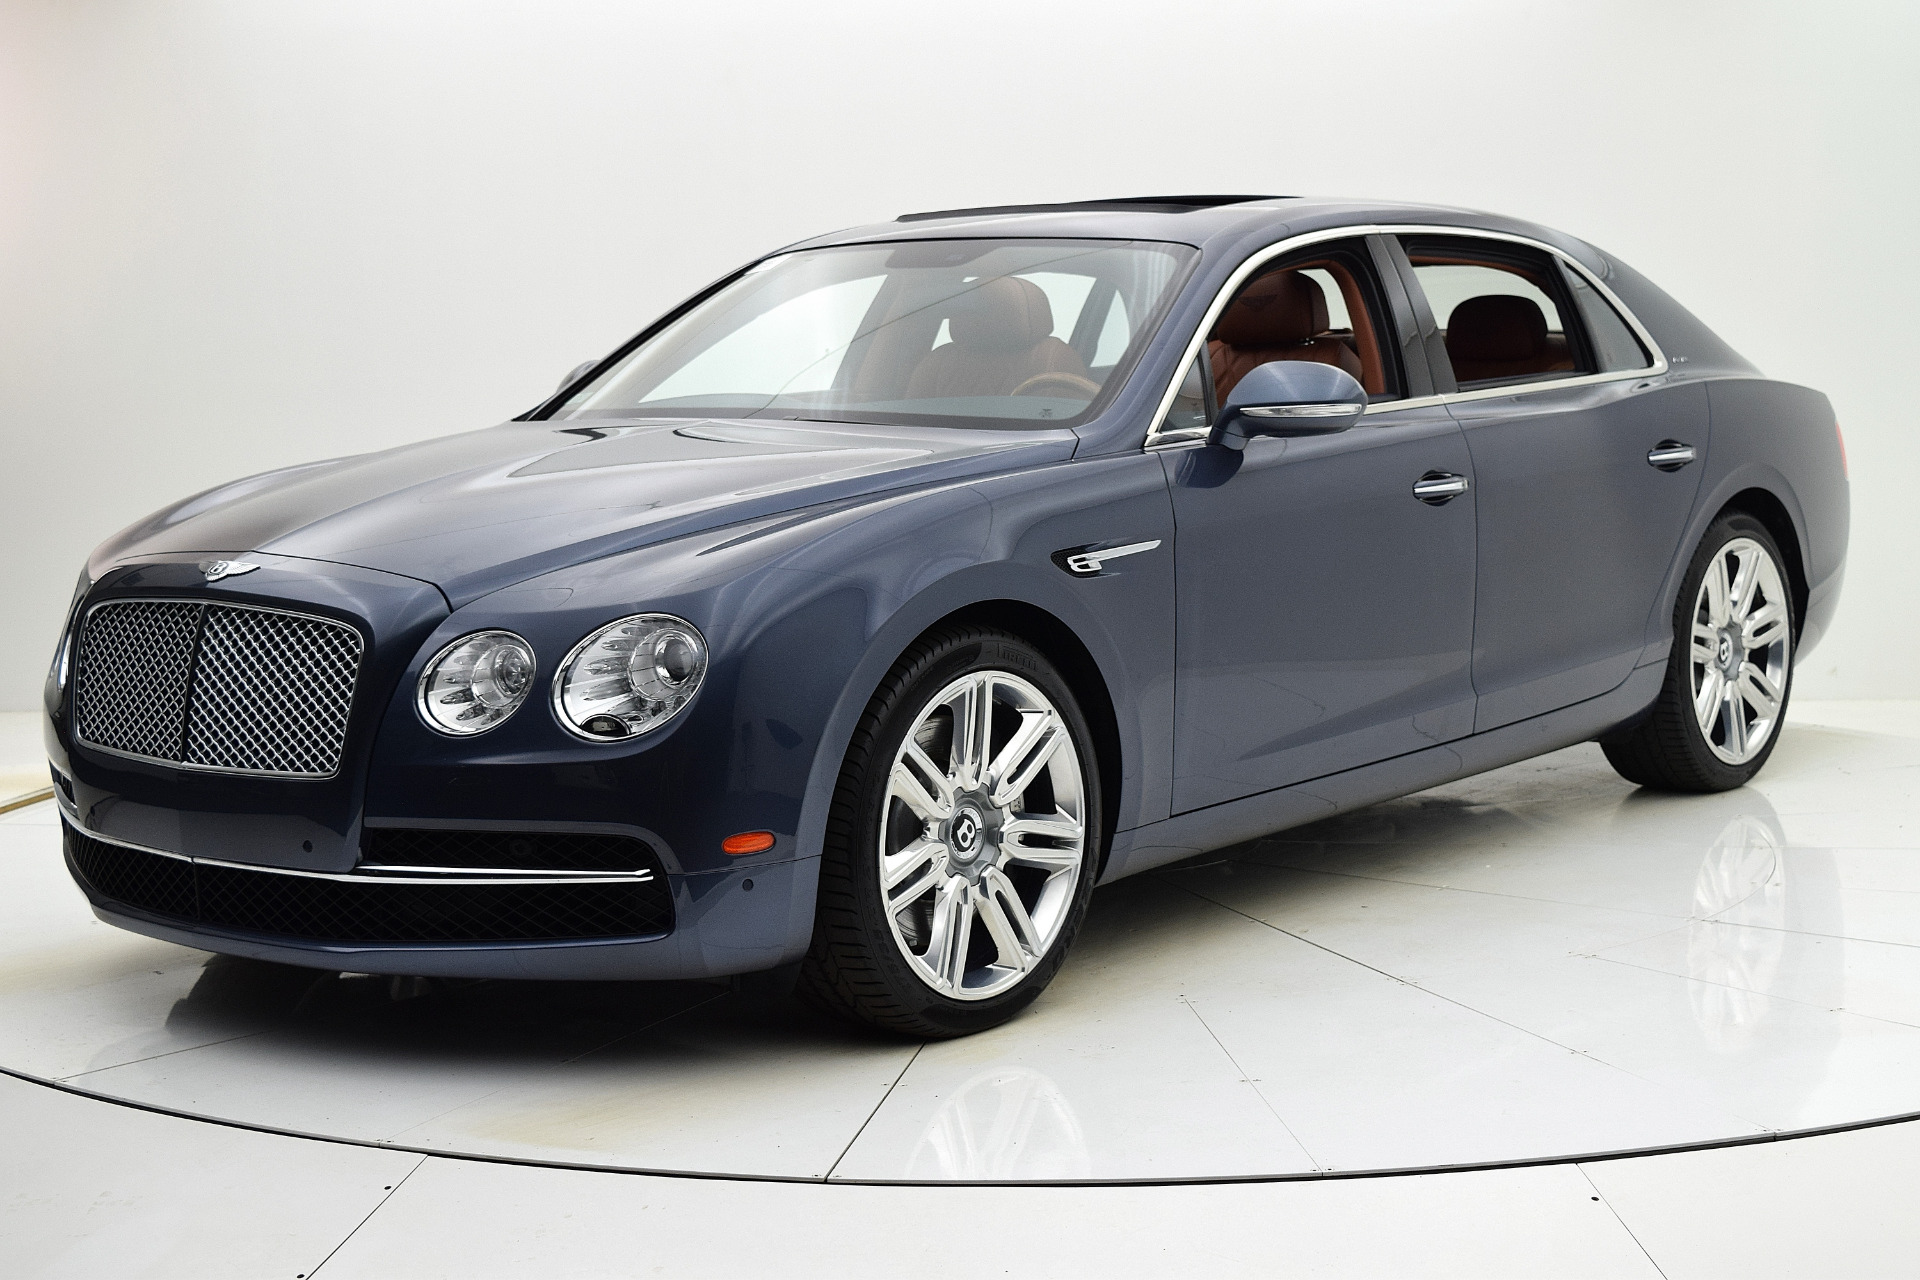 Used 2016 Bentley Flying Spur W12 for sale $105,880 at F.C. Kerbeck Aston Martin in Palmyra NJ 08065 2